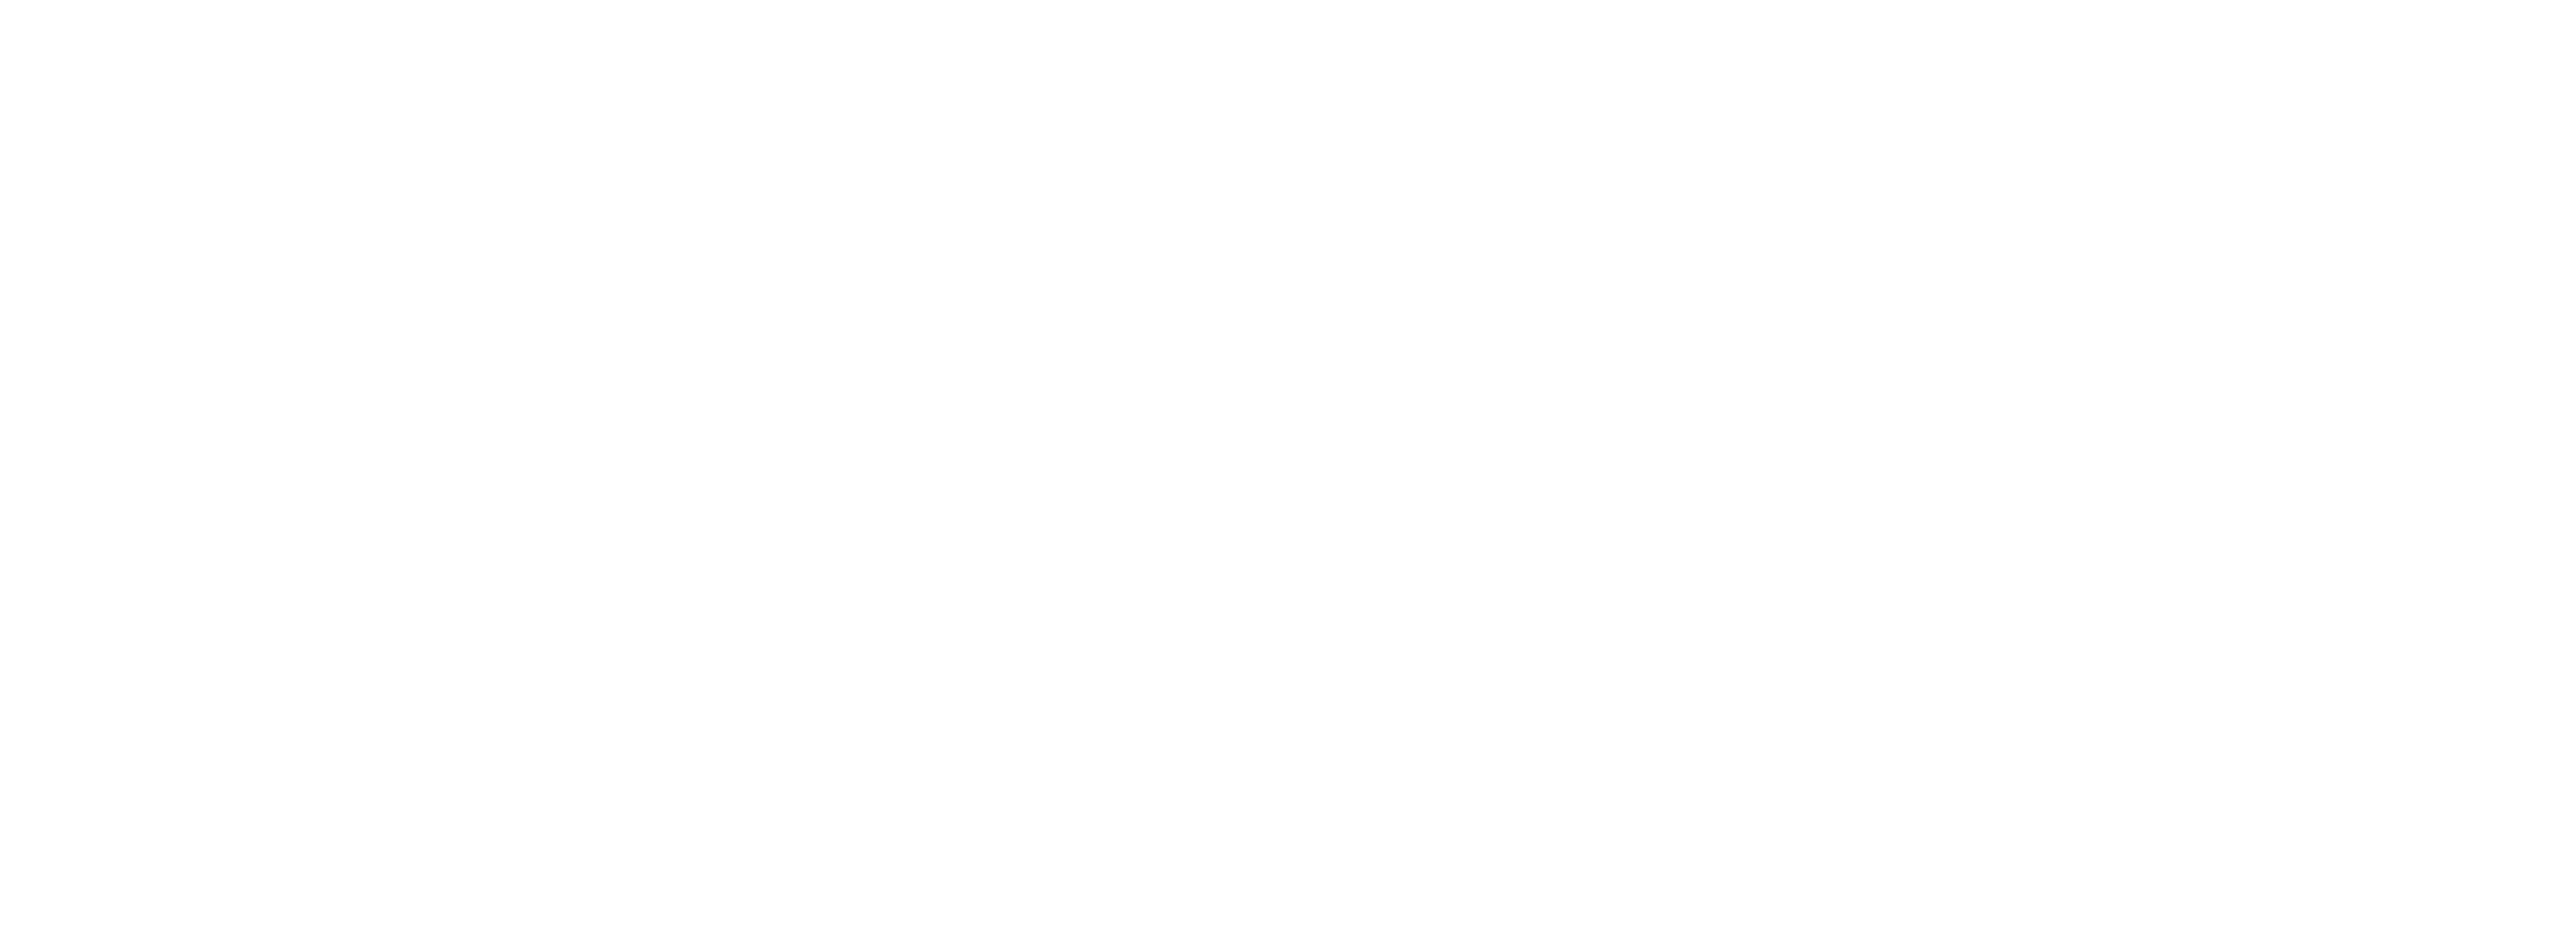 Belmar Flower Shop Inc. - Flower Delivery in Louisville, KY